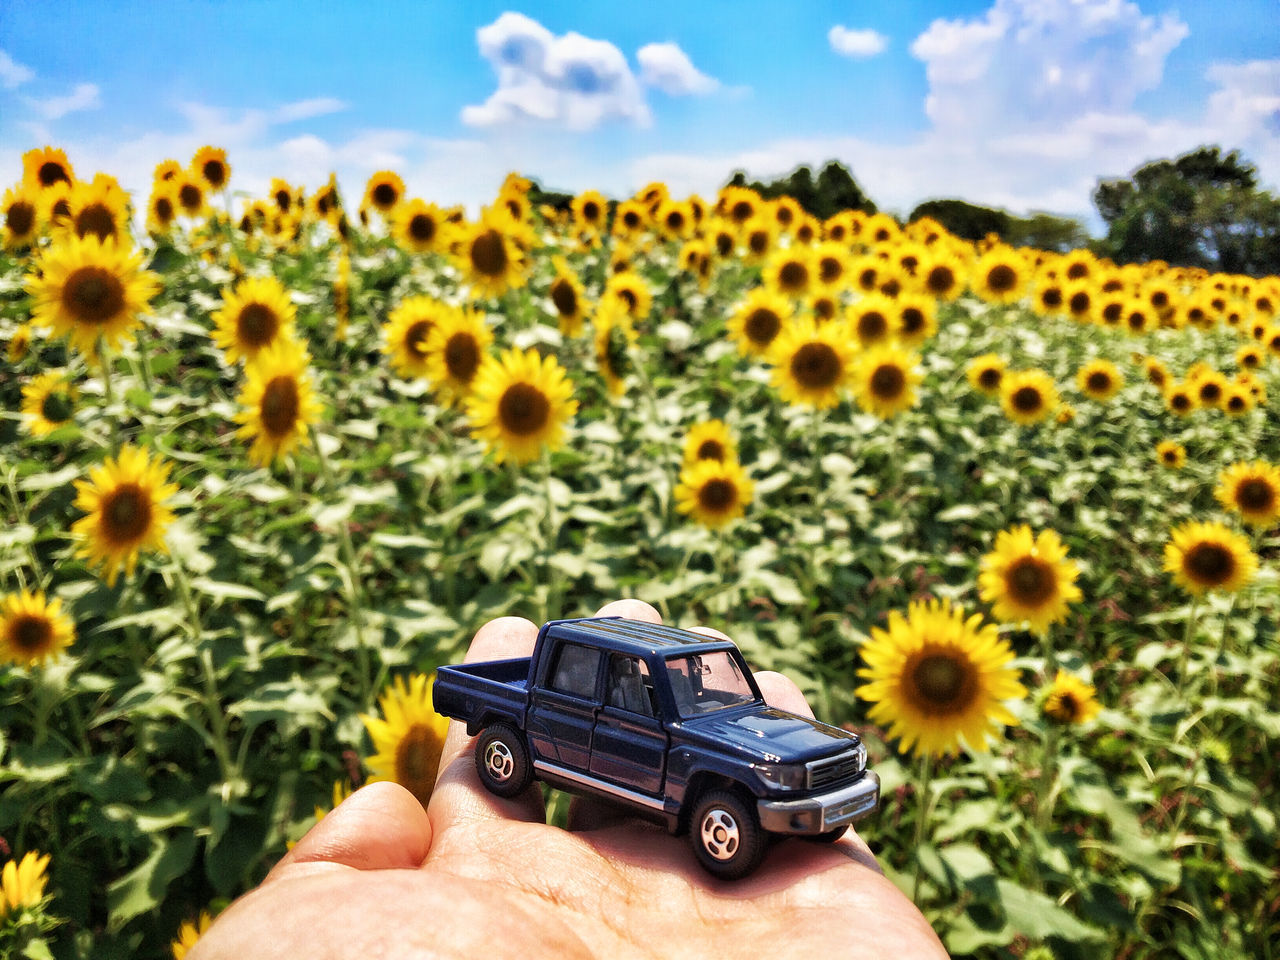 Sunflower field┃ Beautiful Beautiful Nature Beauty In Nature Beauty In Nature Car Clouds And Sky EyeEmNewHere Flower Flower Head Human Body Part Human Hand Nature Nature Nature Photography Nature_collection Naturelovers No People Outdoors Plant Sky Sky And Clouds Summer Sunflower Sunflowers The Great Outdoors - 2017 EyeEm Awards